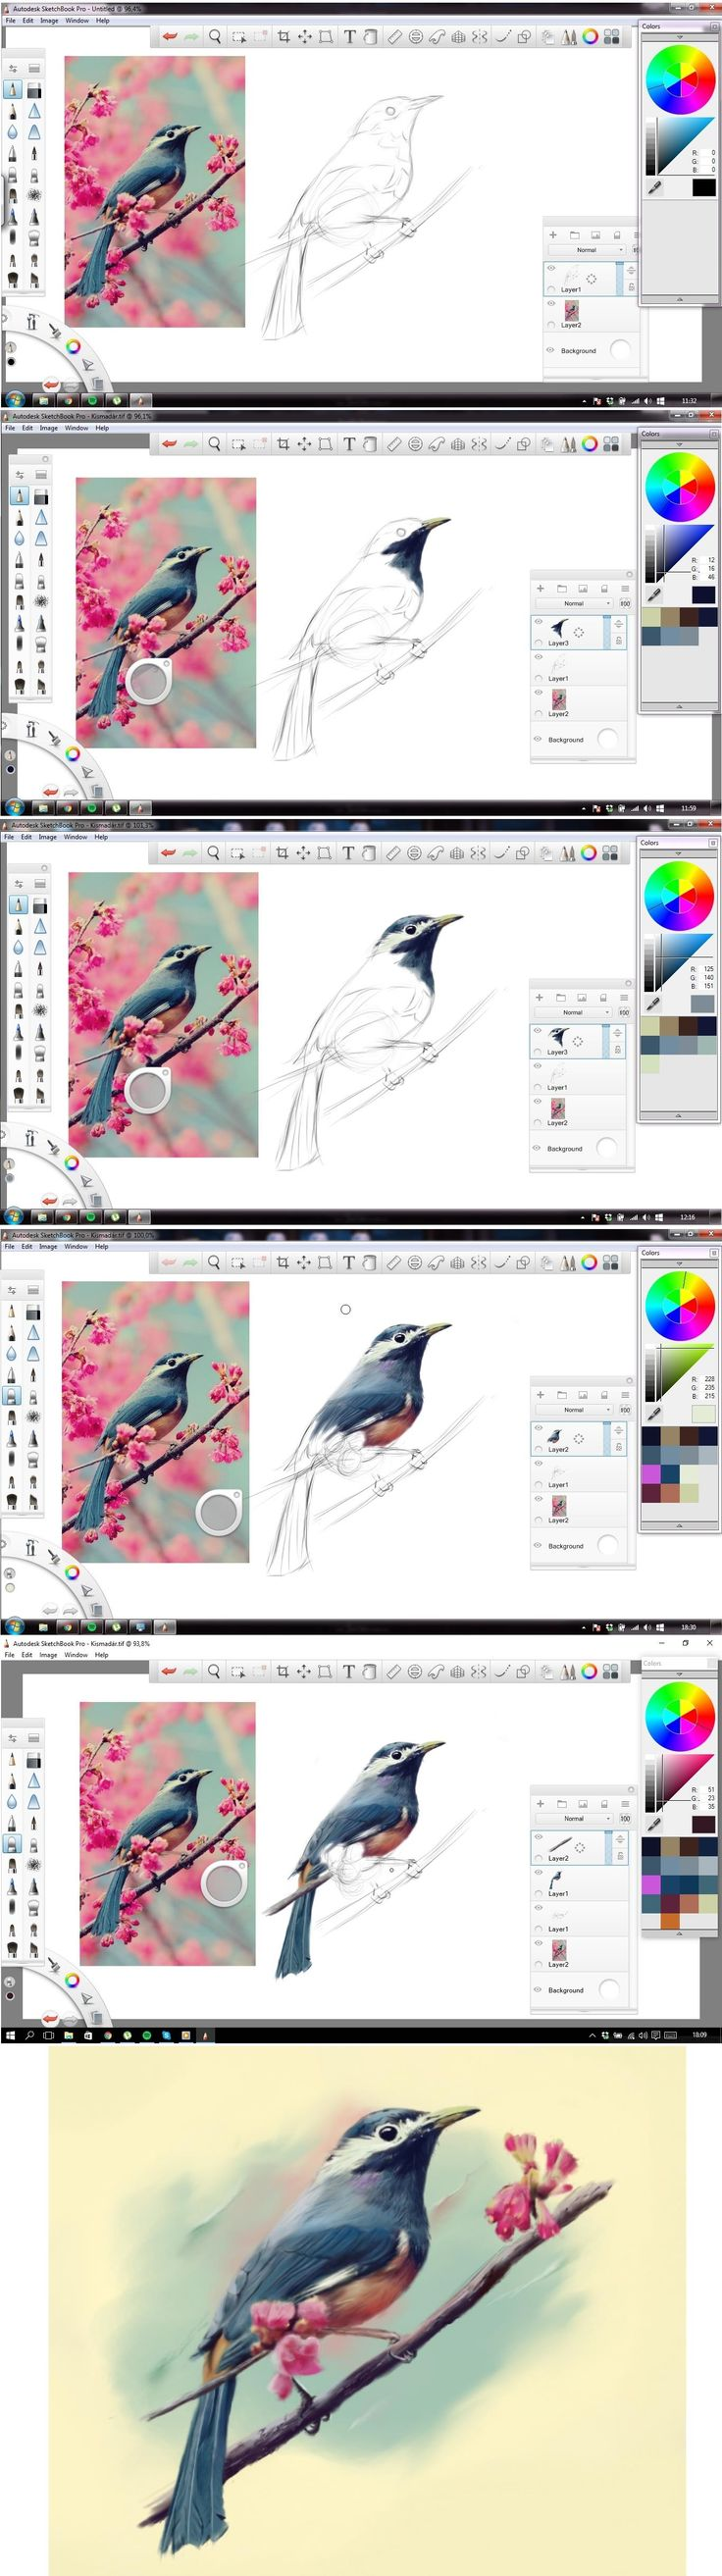 Drawing step-by-step of a blue bird on a cherry tree - digital drawing